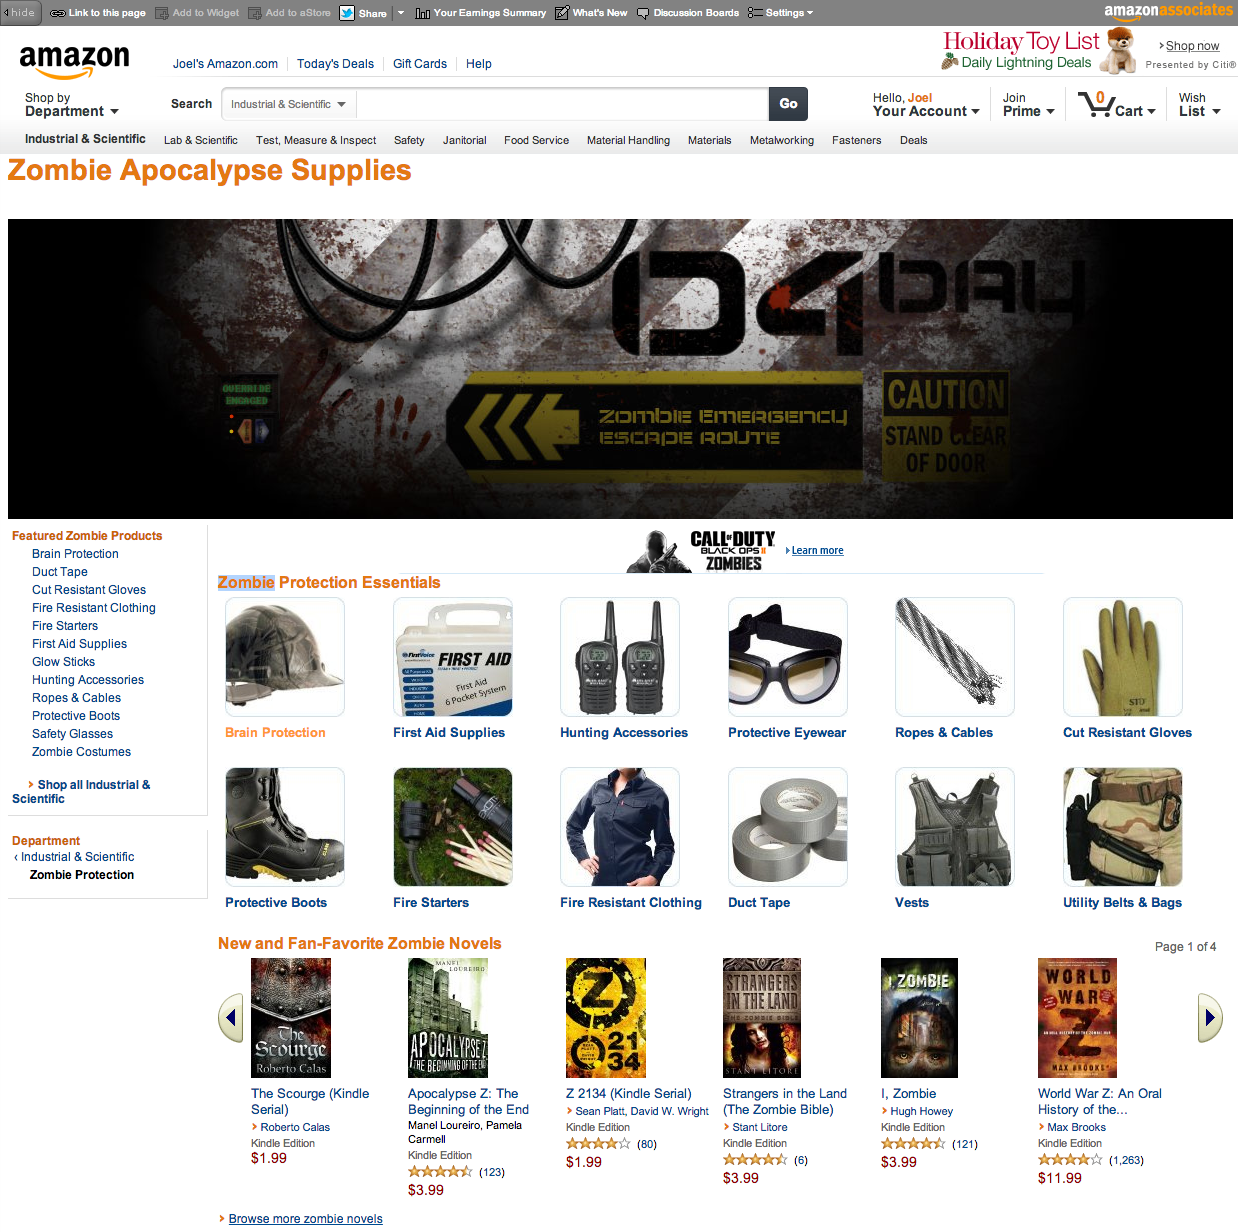 Screen Shot 2012 11 13 at 9.42.21 AM Amazon prepares users for the zombie apocalypse with essential gear